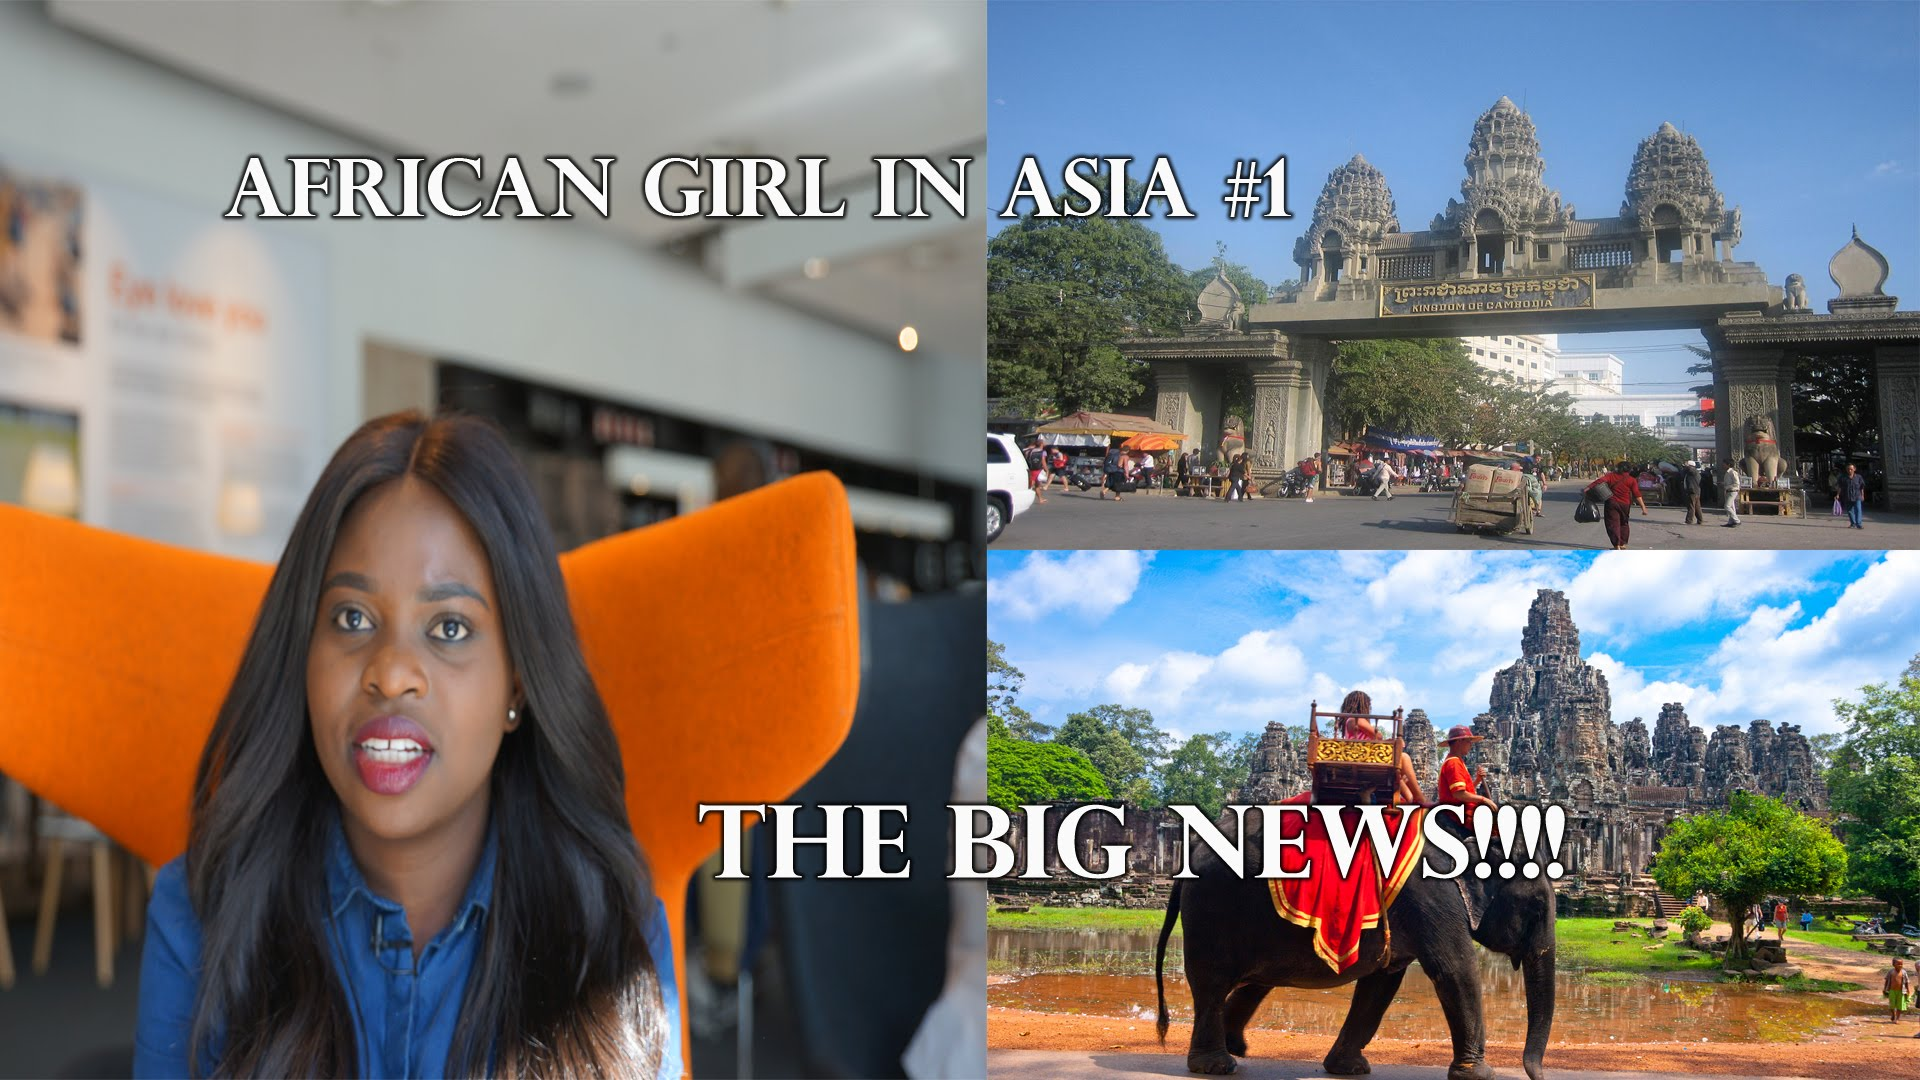 An African girl in Asia: The big news! #1